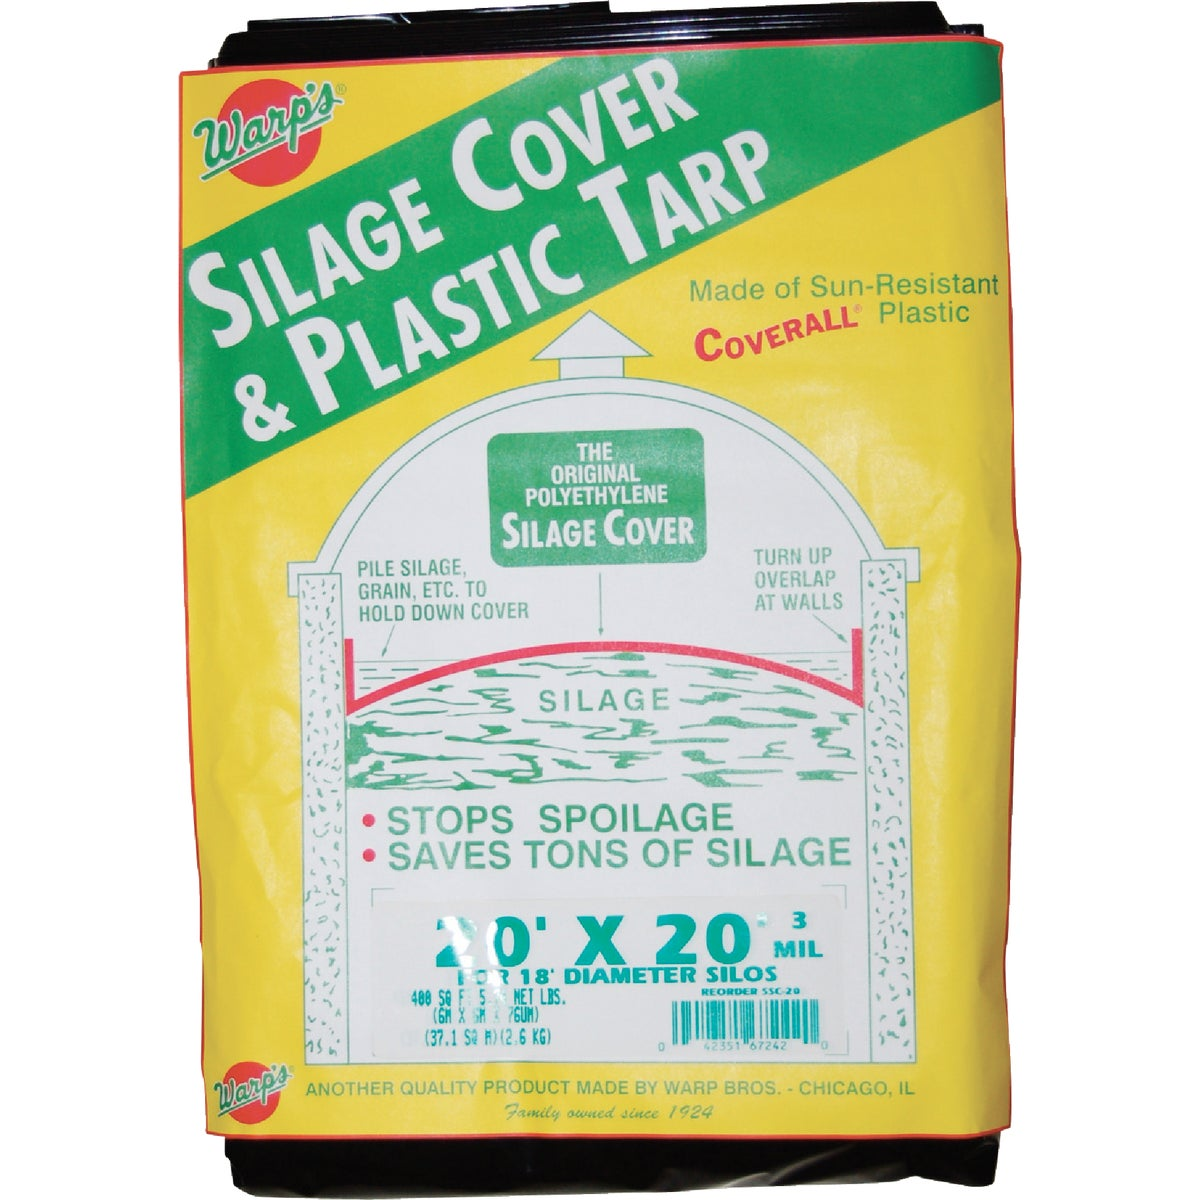 20X20 SILAGE COVER - SSC-20 by Warp Bros